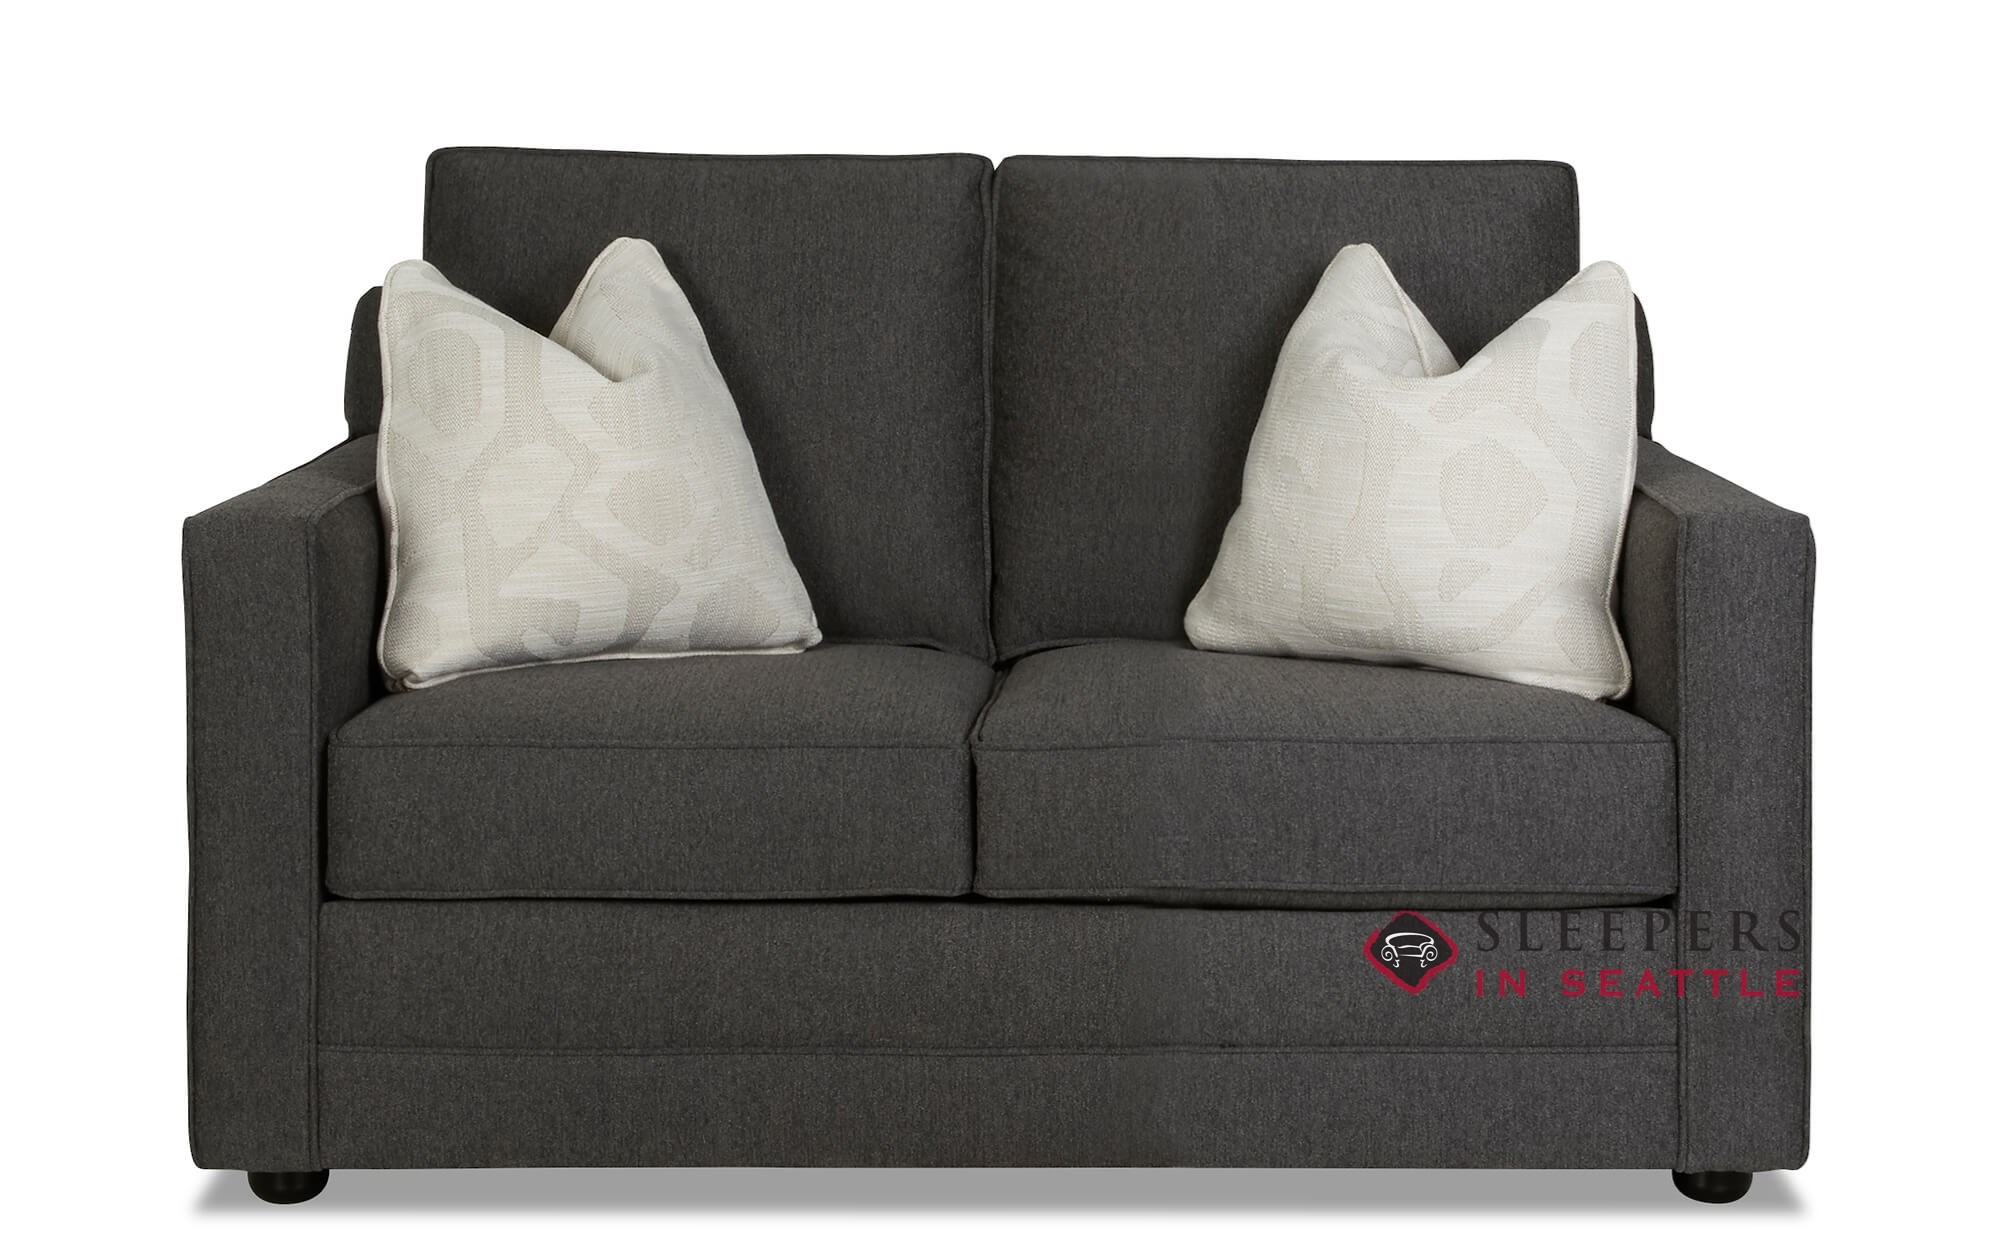 Picture of: Customize And Personalize Luxembourg Twin Fabric Sofa By Savvy Twin Size Sofa Bed Sleepersinseattle Com